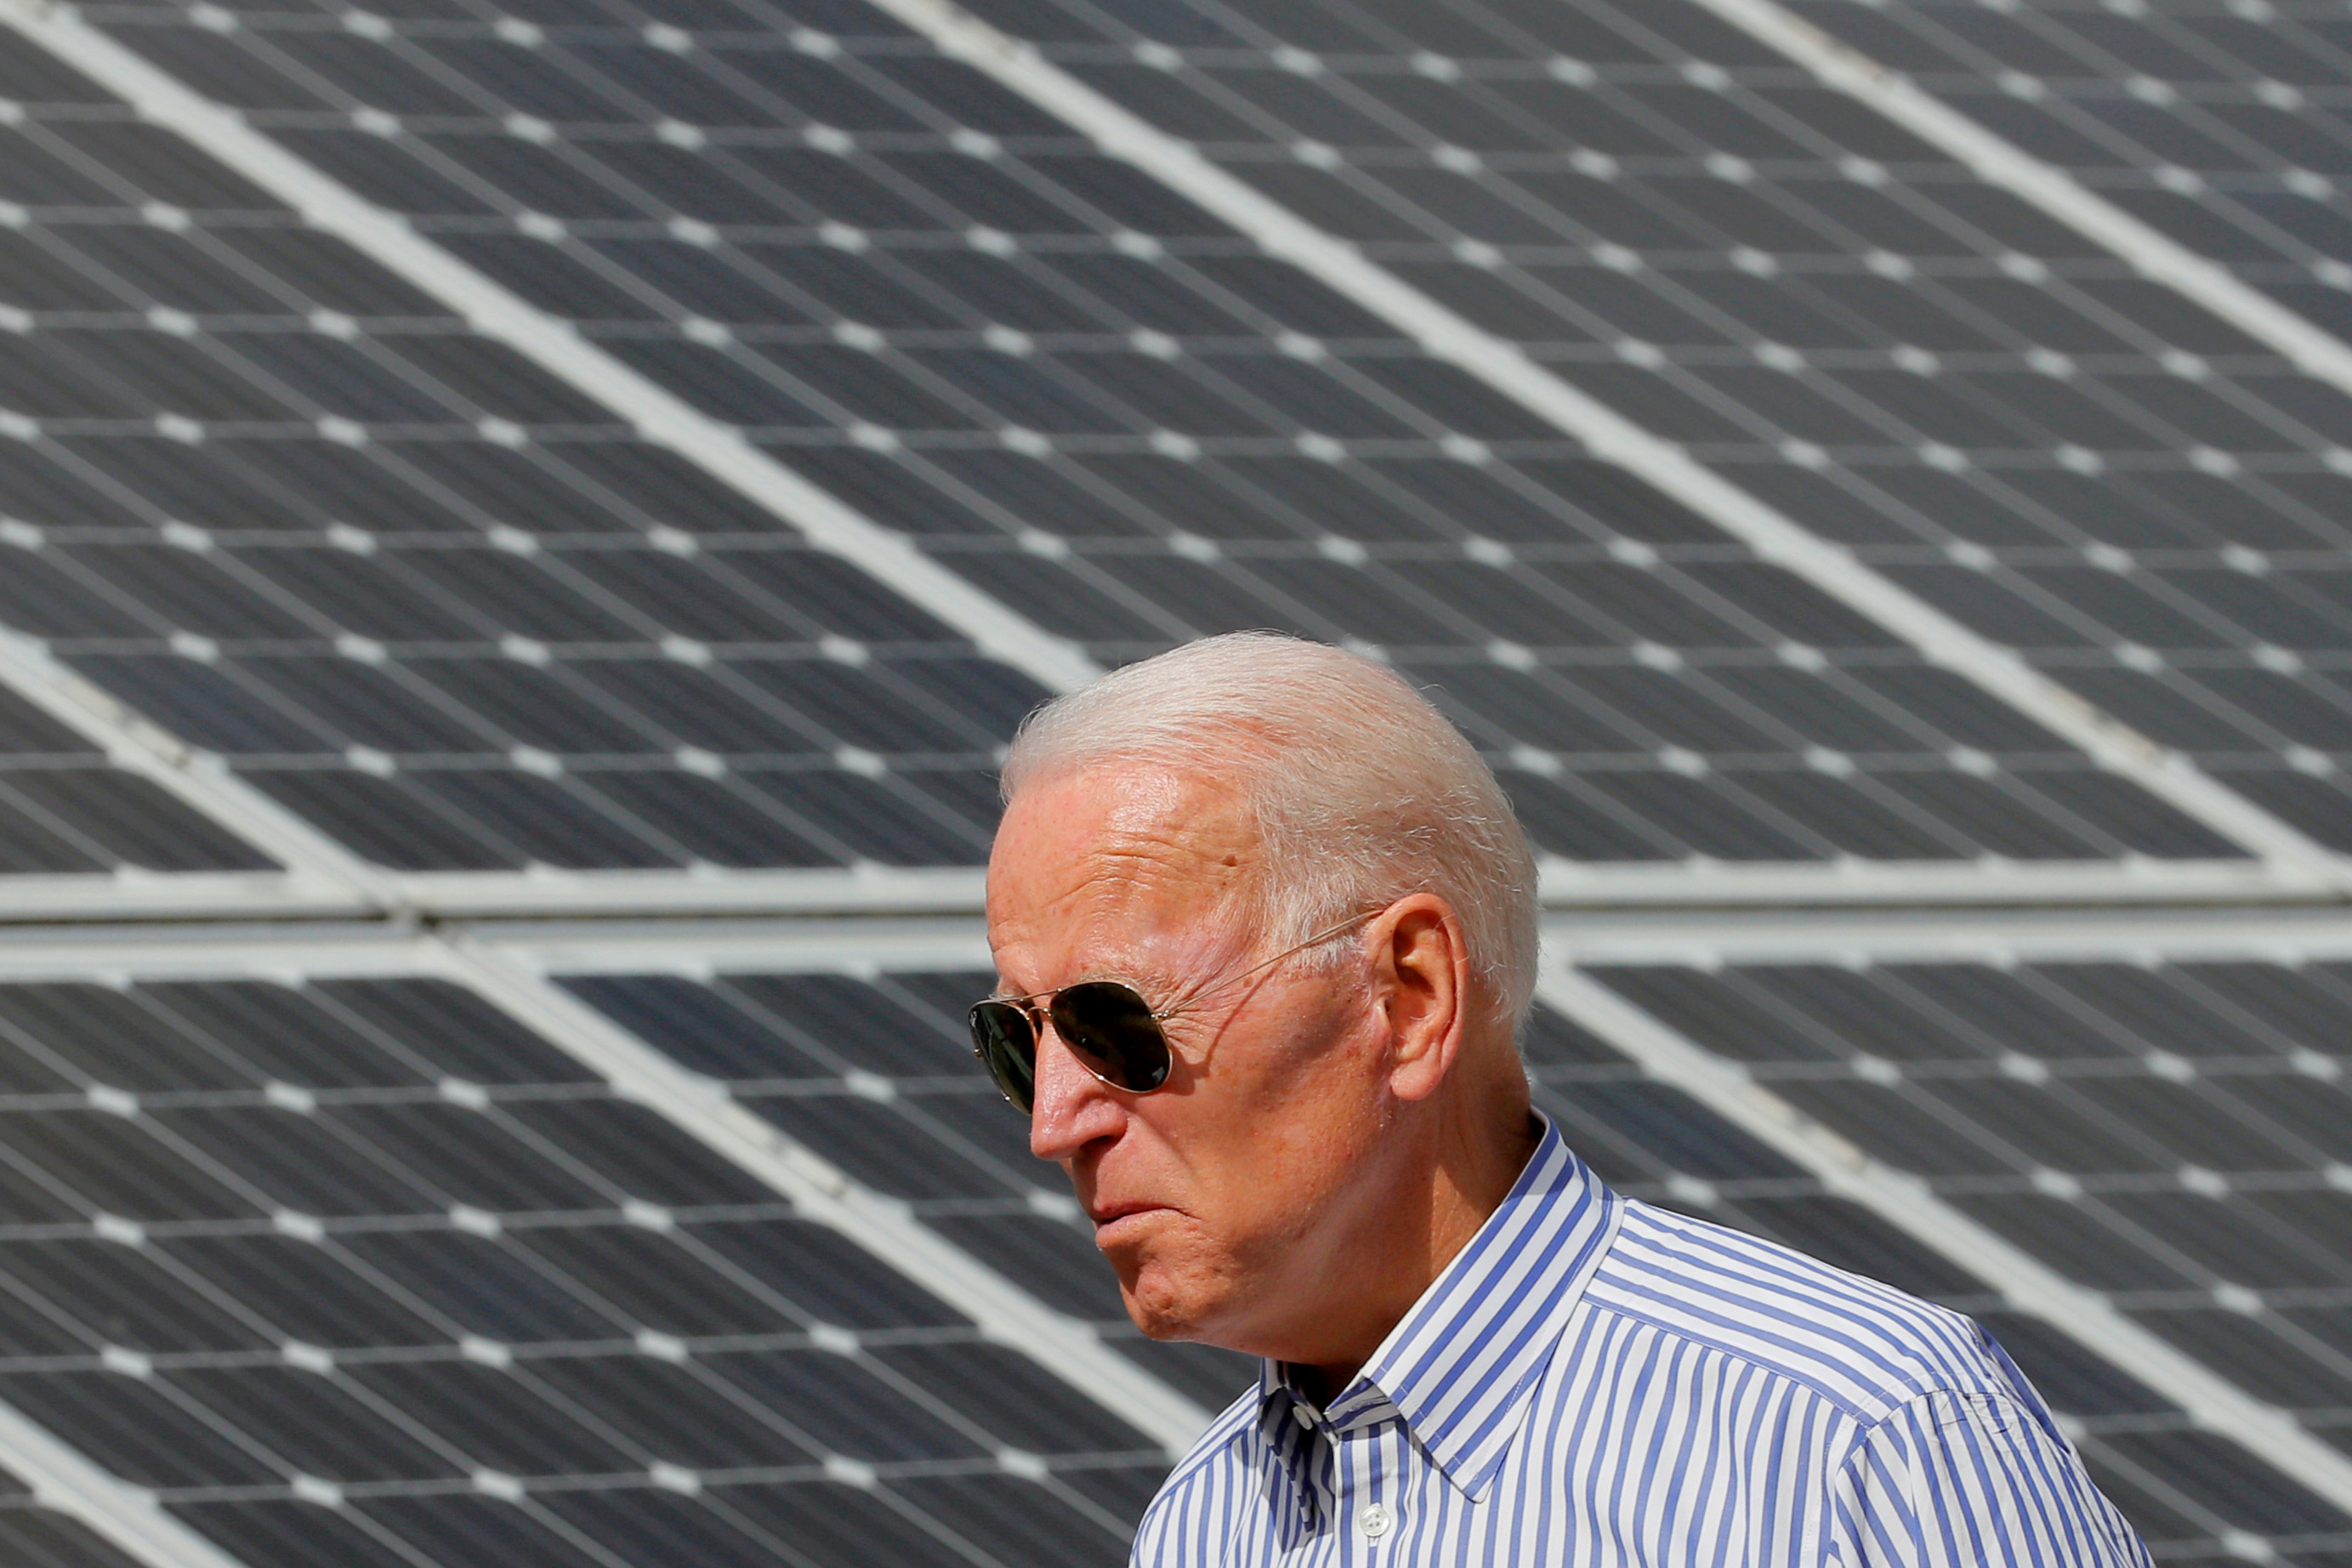 Democratic 2020 U.S. presidential candidate and former Vice President Joe Biden walks past solar panels while touring the Plymouth Area Renewable Energy Initiative in Plymouth, New Hampshire, U.S., June 4, 2019.   REUTERS/Brian Snyder/File Photo